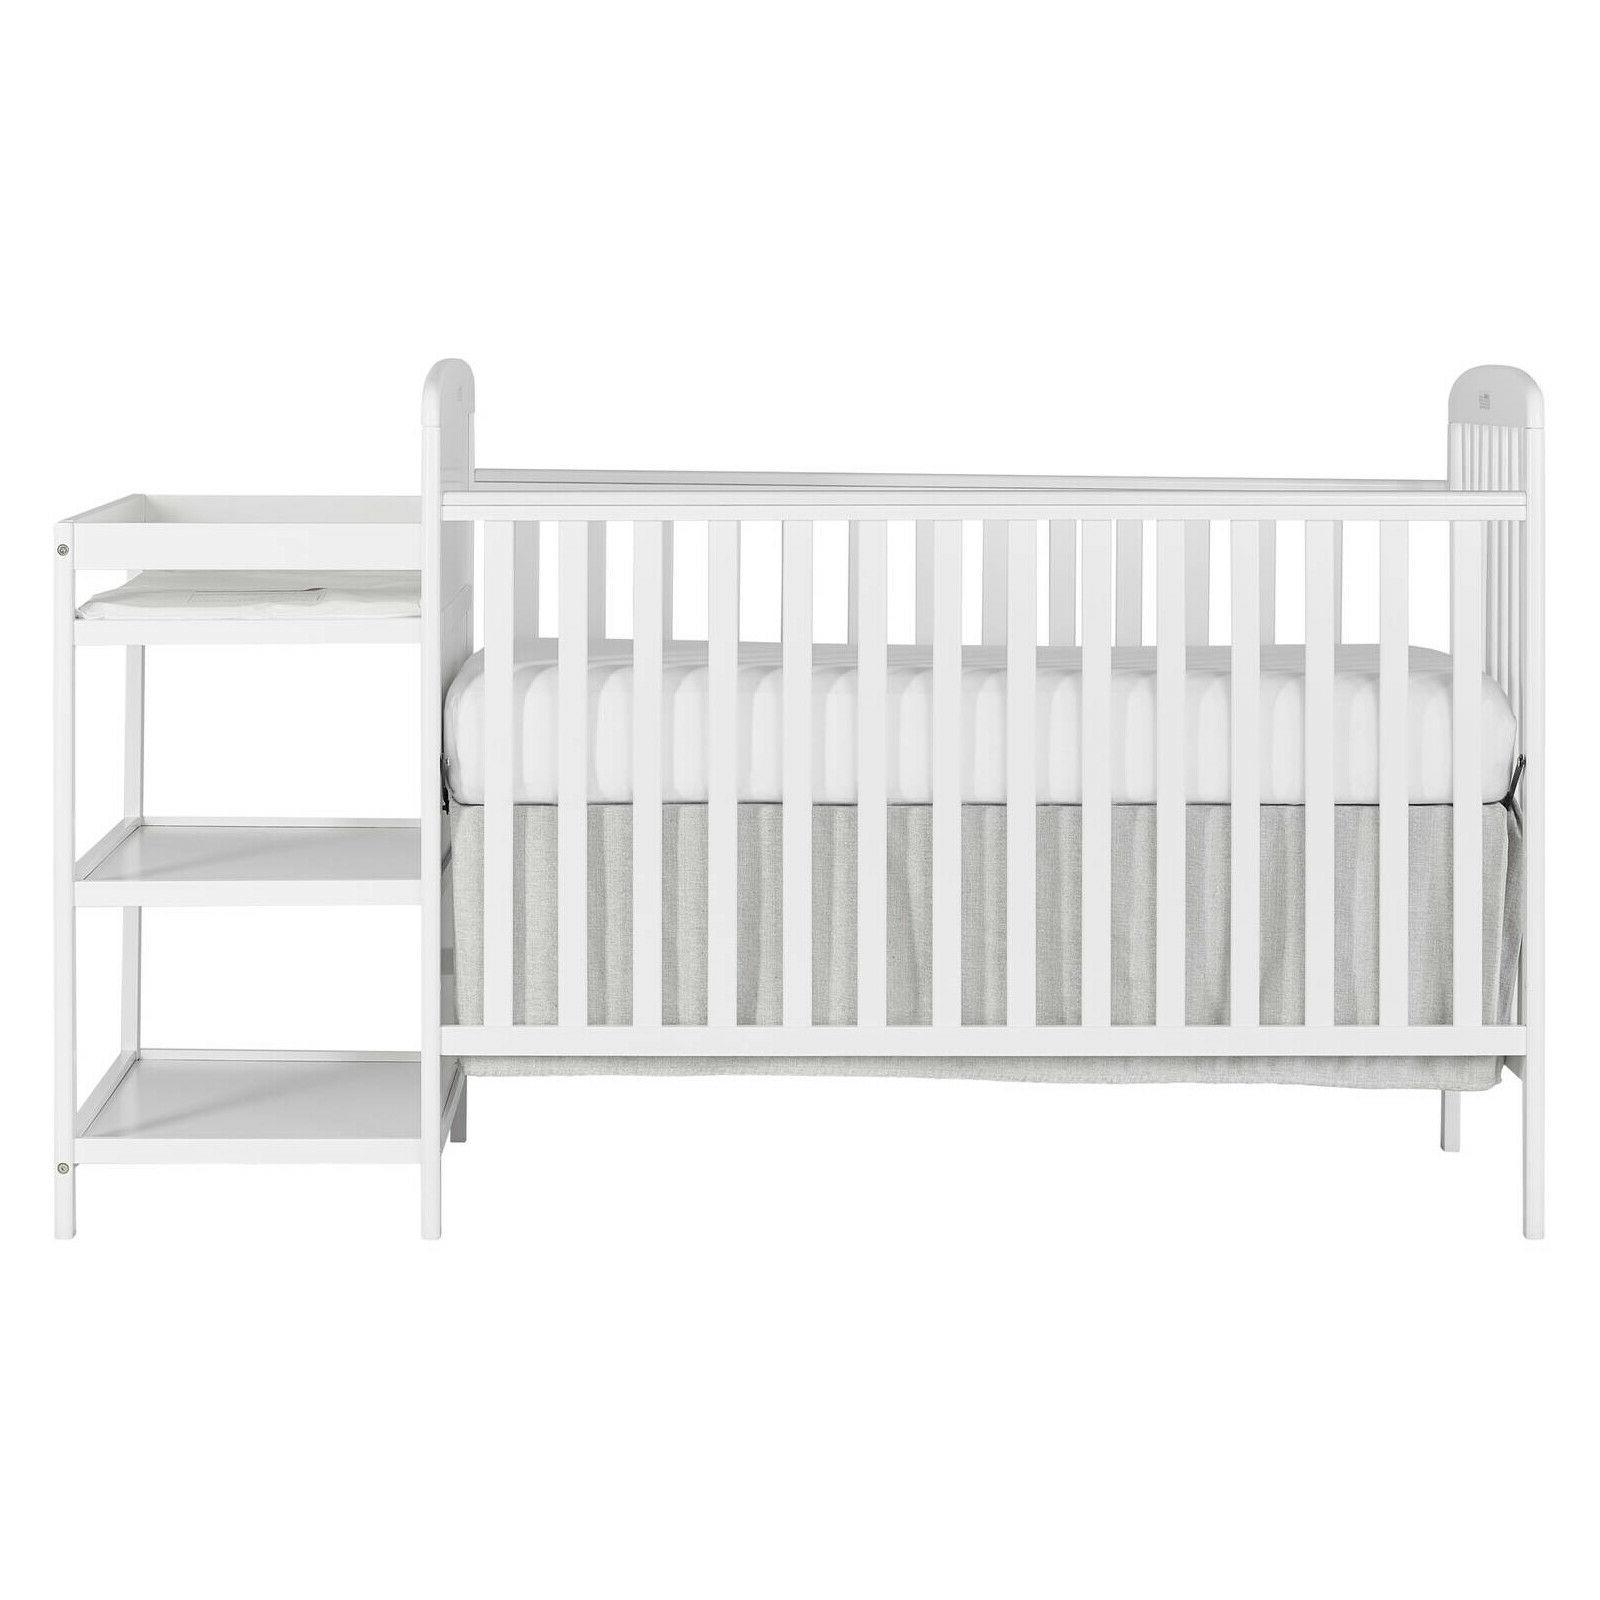 Baby Mattress 4-in-1 Table